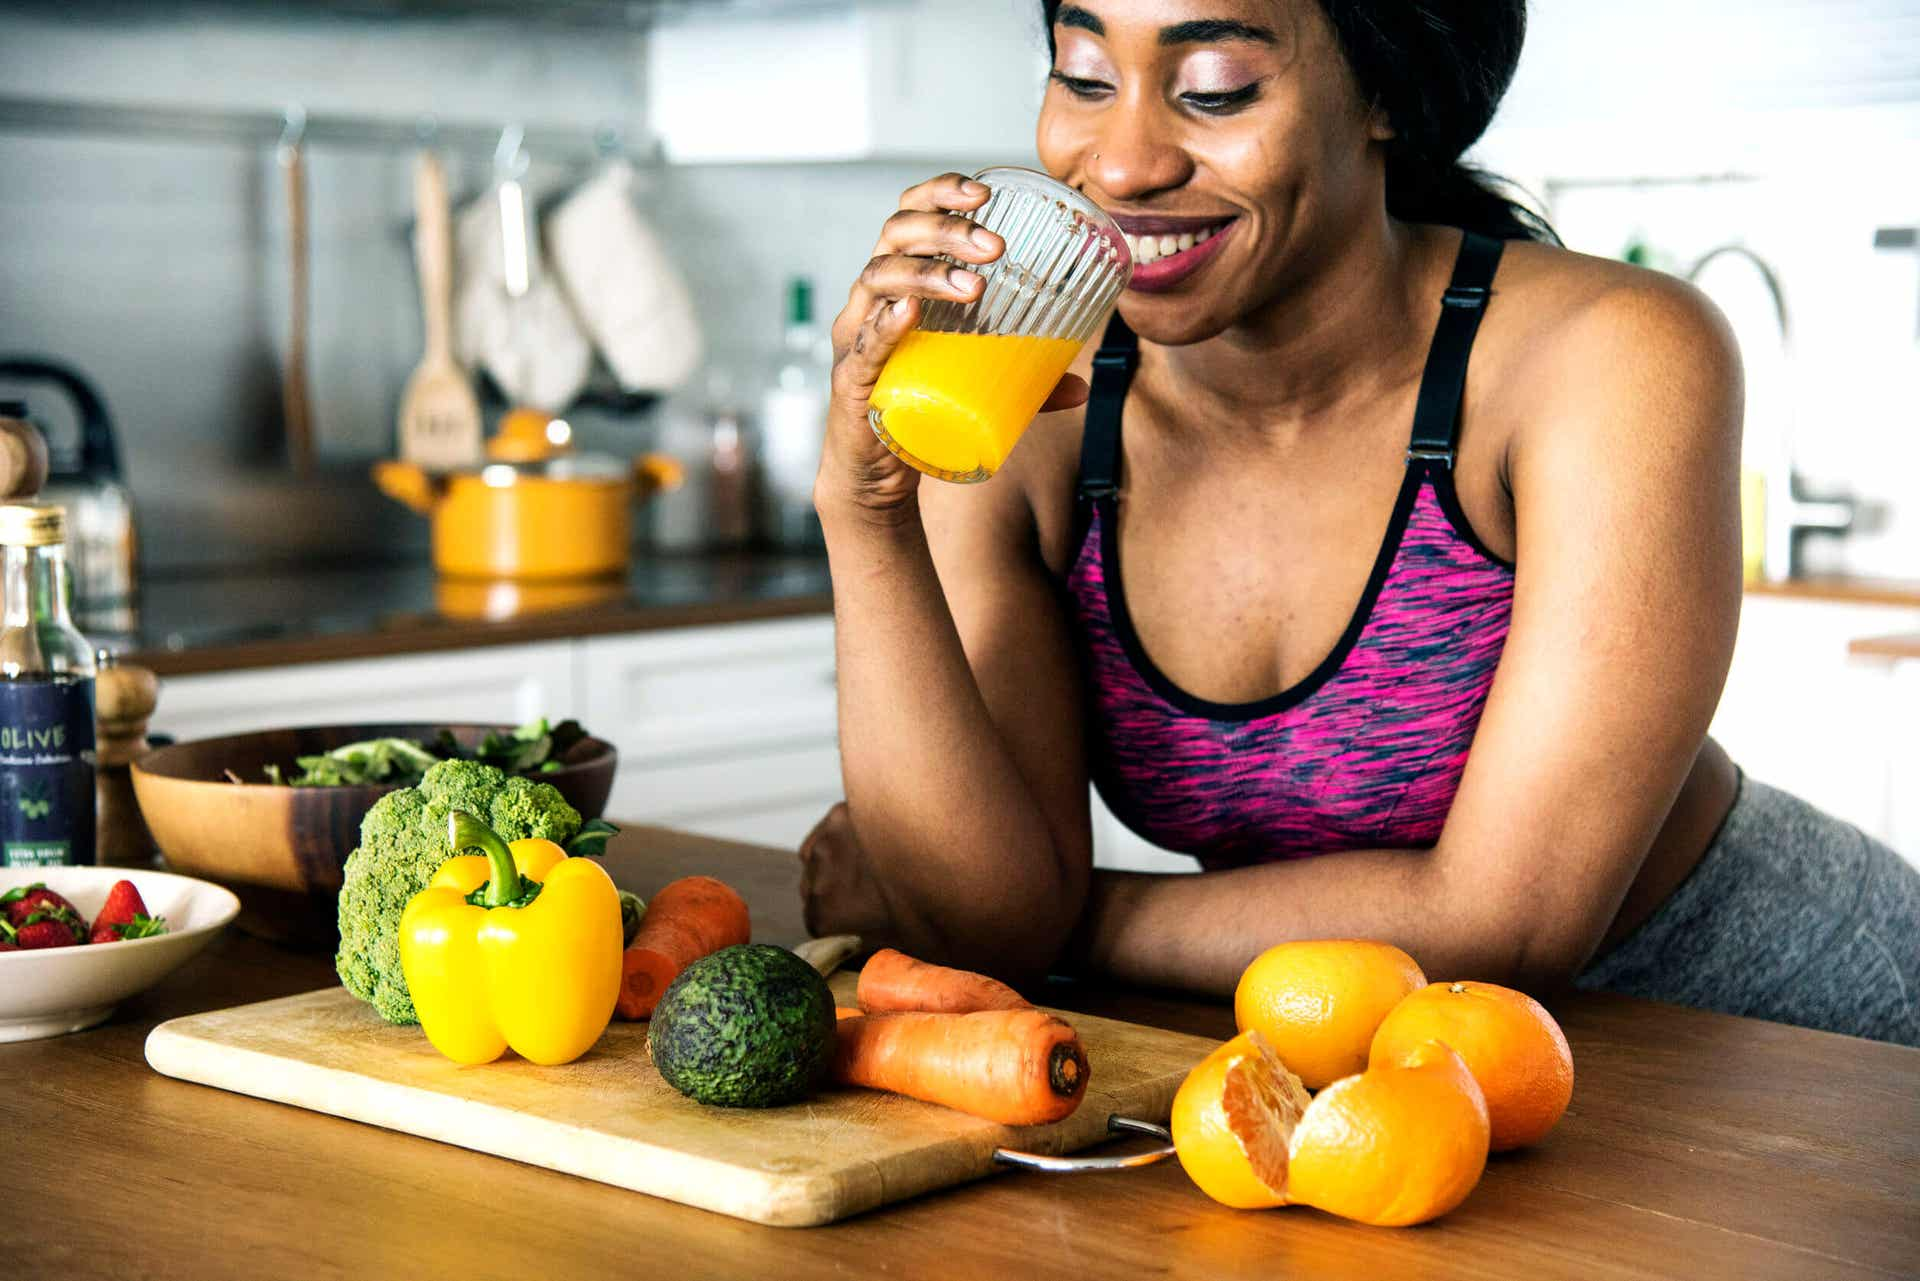 A woman in workout clothes drinking orange juice near a counter full of fruits and vegetables.